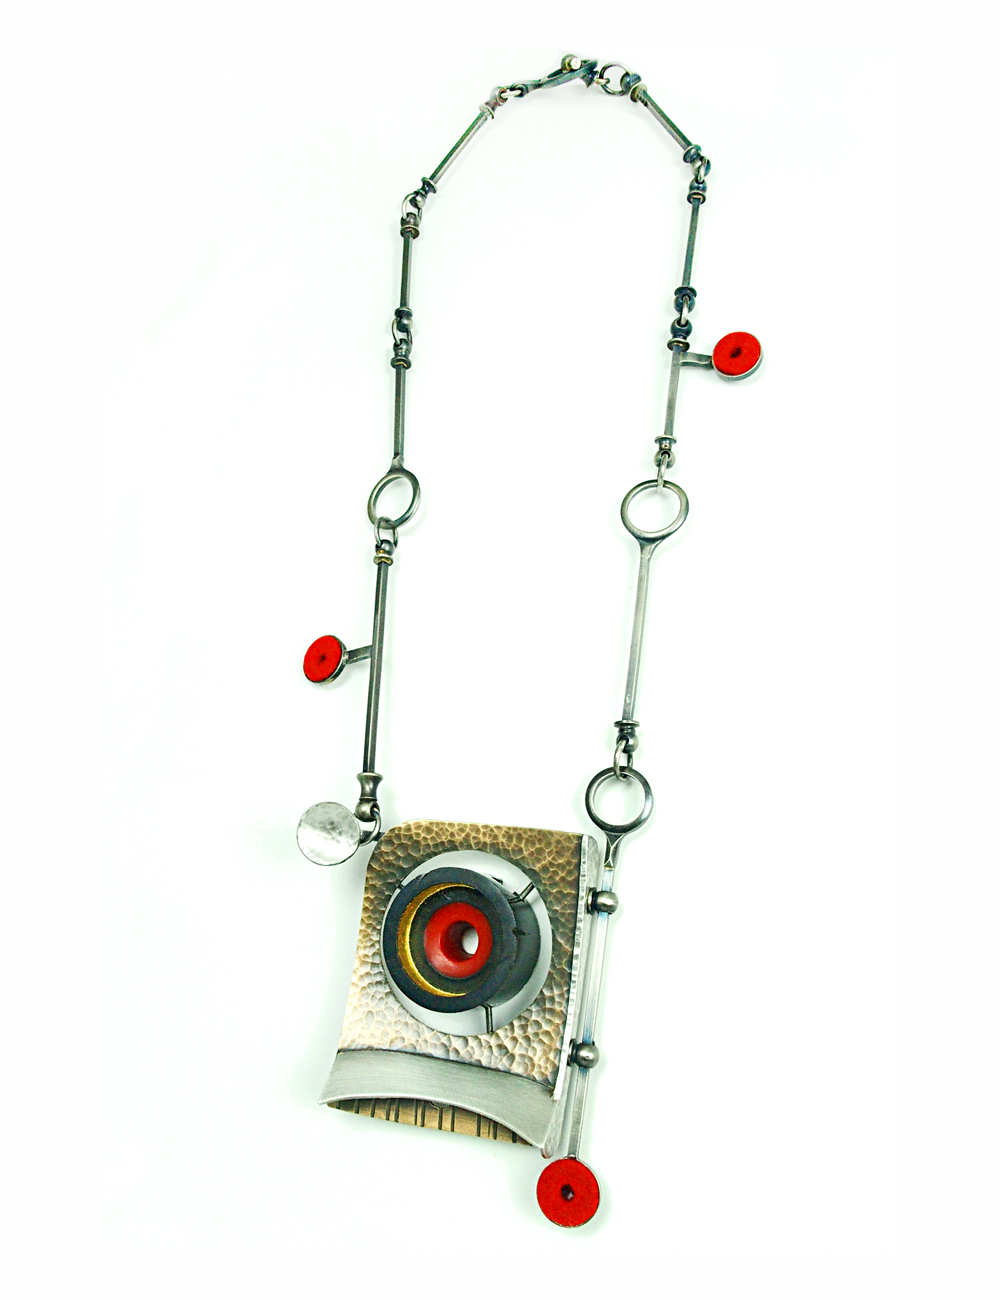 "Cyclops Necklace, 2015, Bronze, sterling silver, nickle silver, vintage clarinet parts, epoxy resin, felt, stainless steel, 23ky gold leaf, paint, 3.5 x 2.5 x 1"" pendant- 20"" necklace"